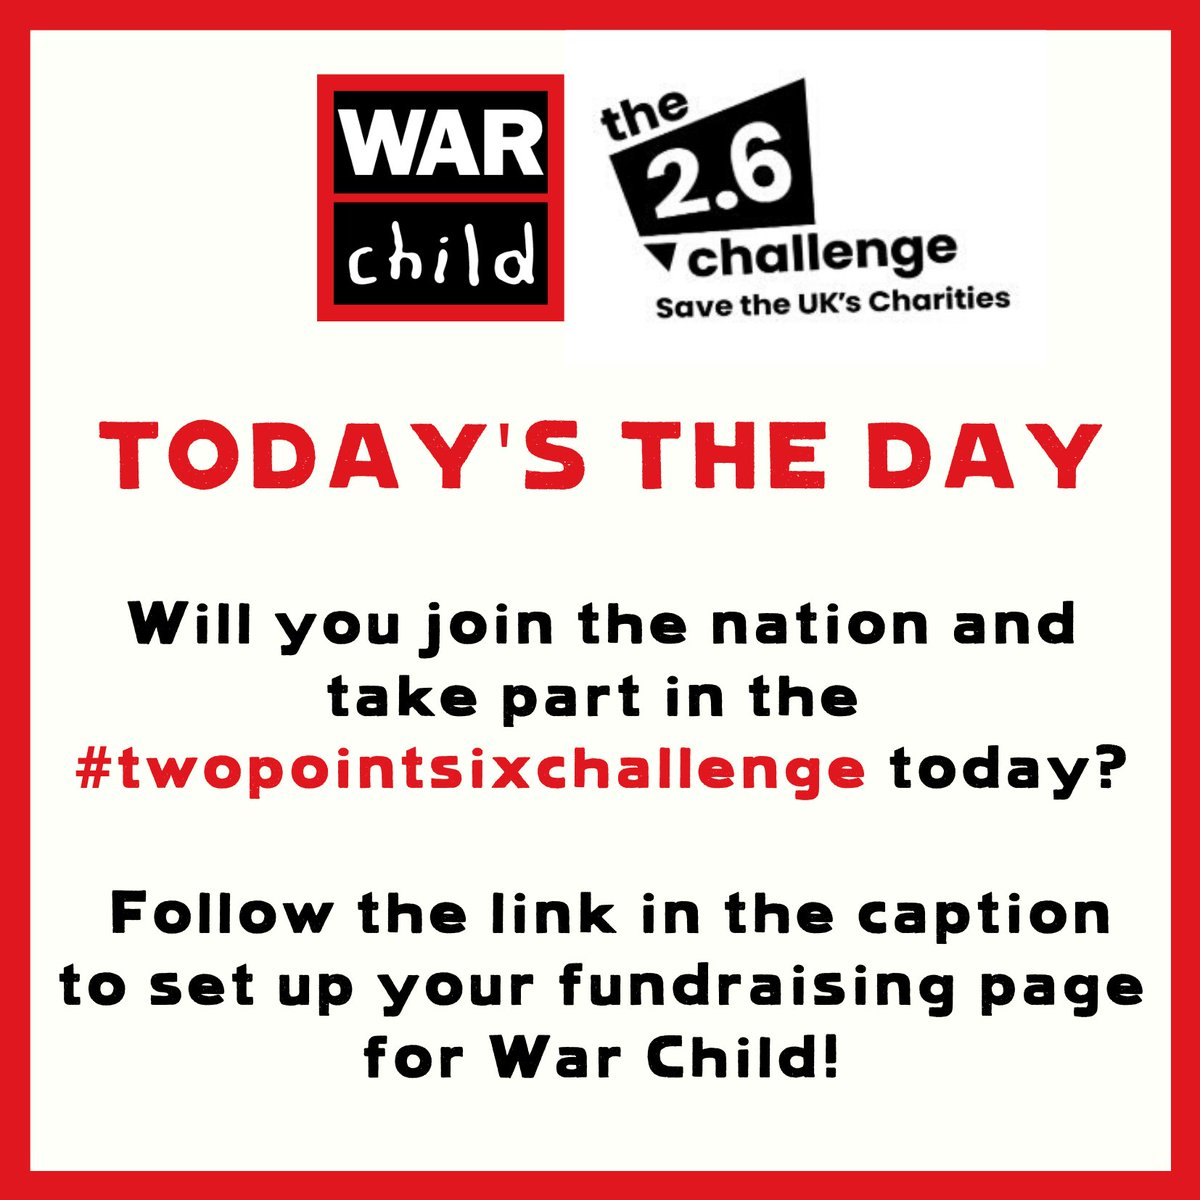 Let's get fundraising! Choose any #twopointsixchallenge you like, and join us in keeping children in conflict zones safe >> https://t.co/AeNAnsWuTJ https://t.co/JI3eL69JRV